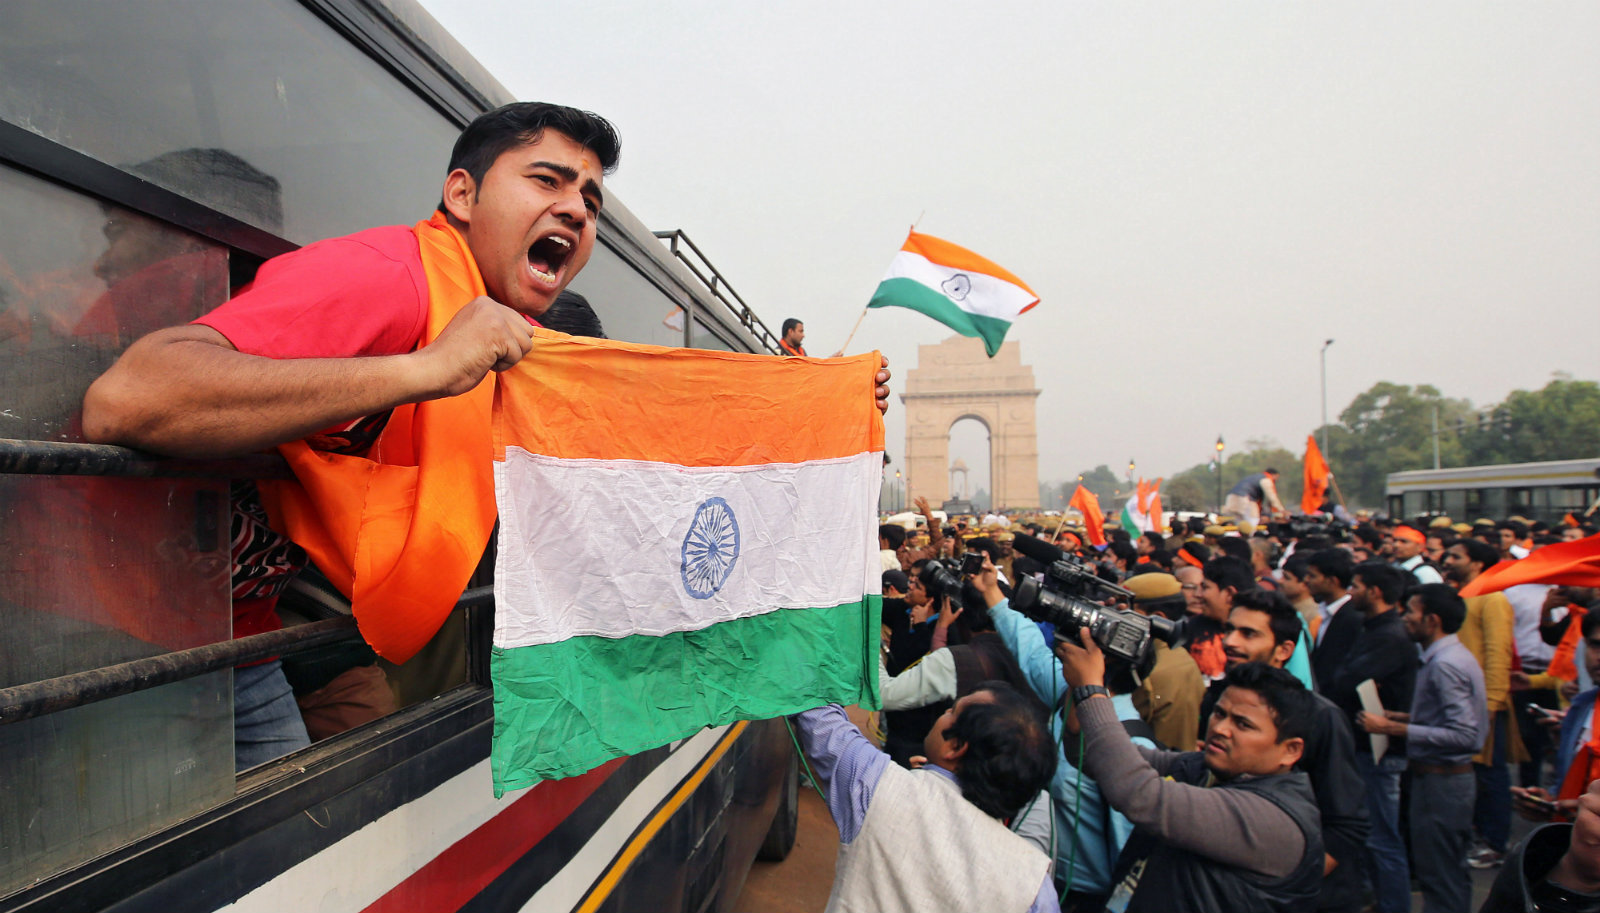 Indian student activists of the student organization Akhil Bharatiya Vidyarthi Parishad (ABVP) are detained by policemen during a protest march at Rajpath against a group of Jawaharlal Nehru University(JNU) students for shouting anti-national slogans in New Delhi, India, 12 February 2016. Indian police filed sedition charges against students of a Jawaharlal Nehru university (JNU) in connection with a protest against the execution of a Kashmiri separatist, Afzal guru, officials said Friday. A ruling party lawmaker had complained to police that students allegedly shouted slogans against the government and the country at the function to mark the hanging of Afzal Guru. Guru was hanged on February 9, 2012 for an attack on the Indian Parliament in which 14 people were killed. Civil rights activists say Guru was not given a fair trial.